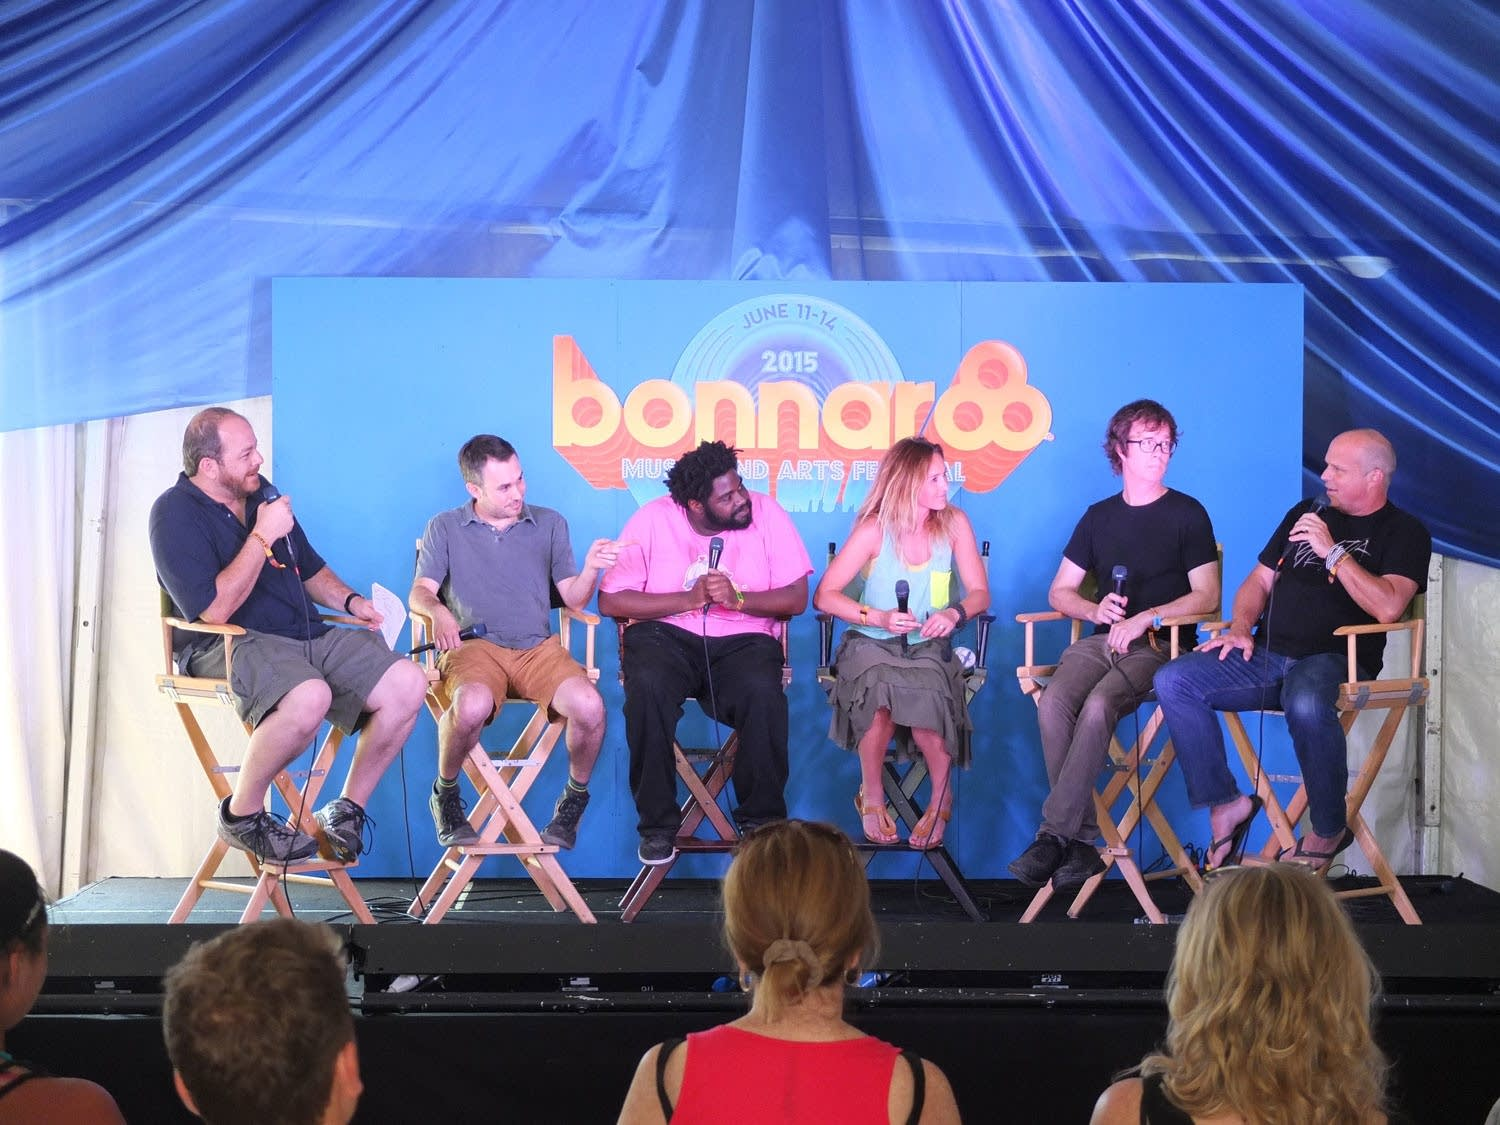 Music industry discussion panel at Bonnaroo